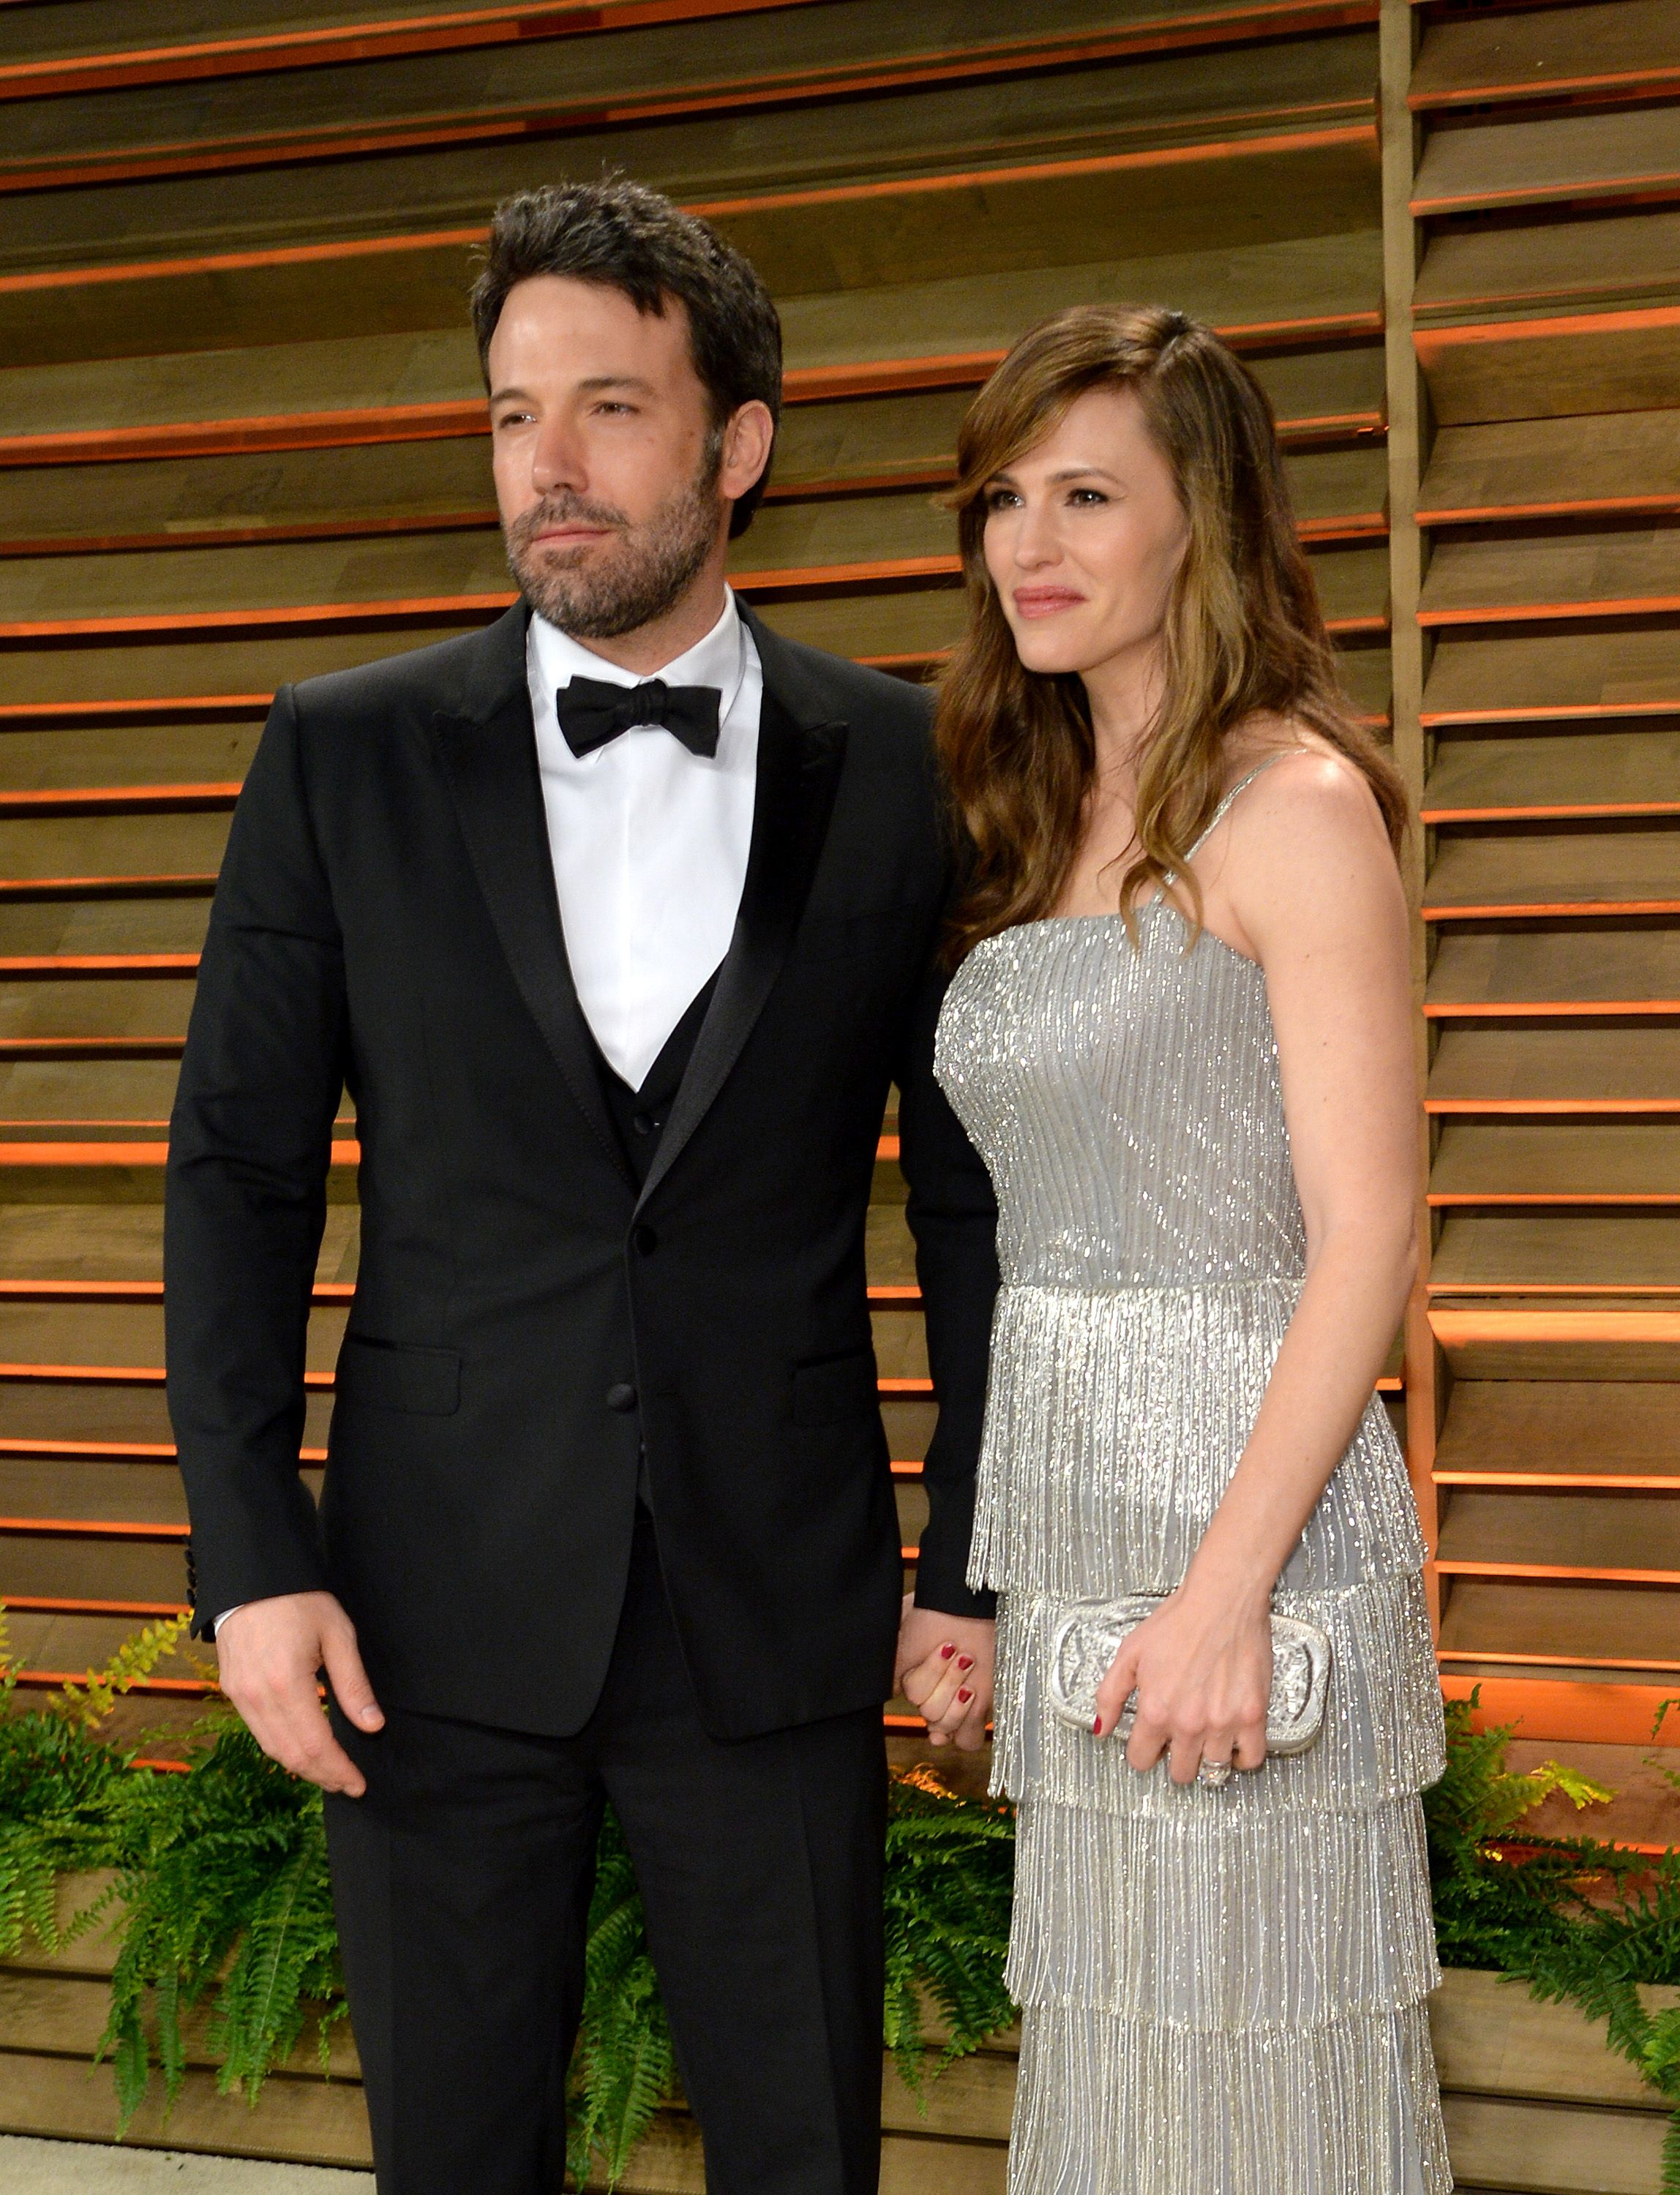 Ben Affleck and Jennifer Garner at the Vanity Fair Oscar Party Hosted By Graydon Carter on March 2, 2014 | Photo: Getty Images